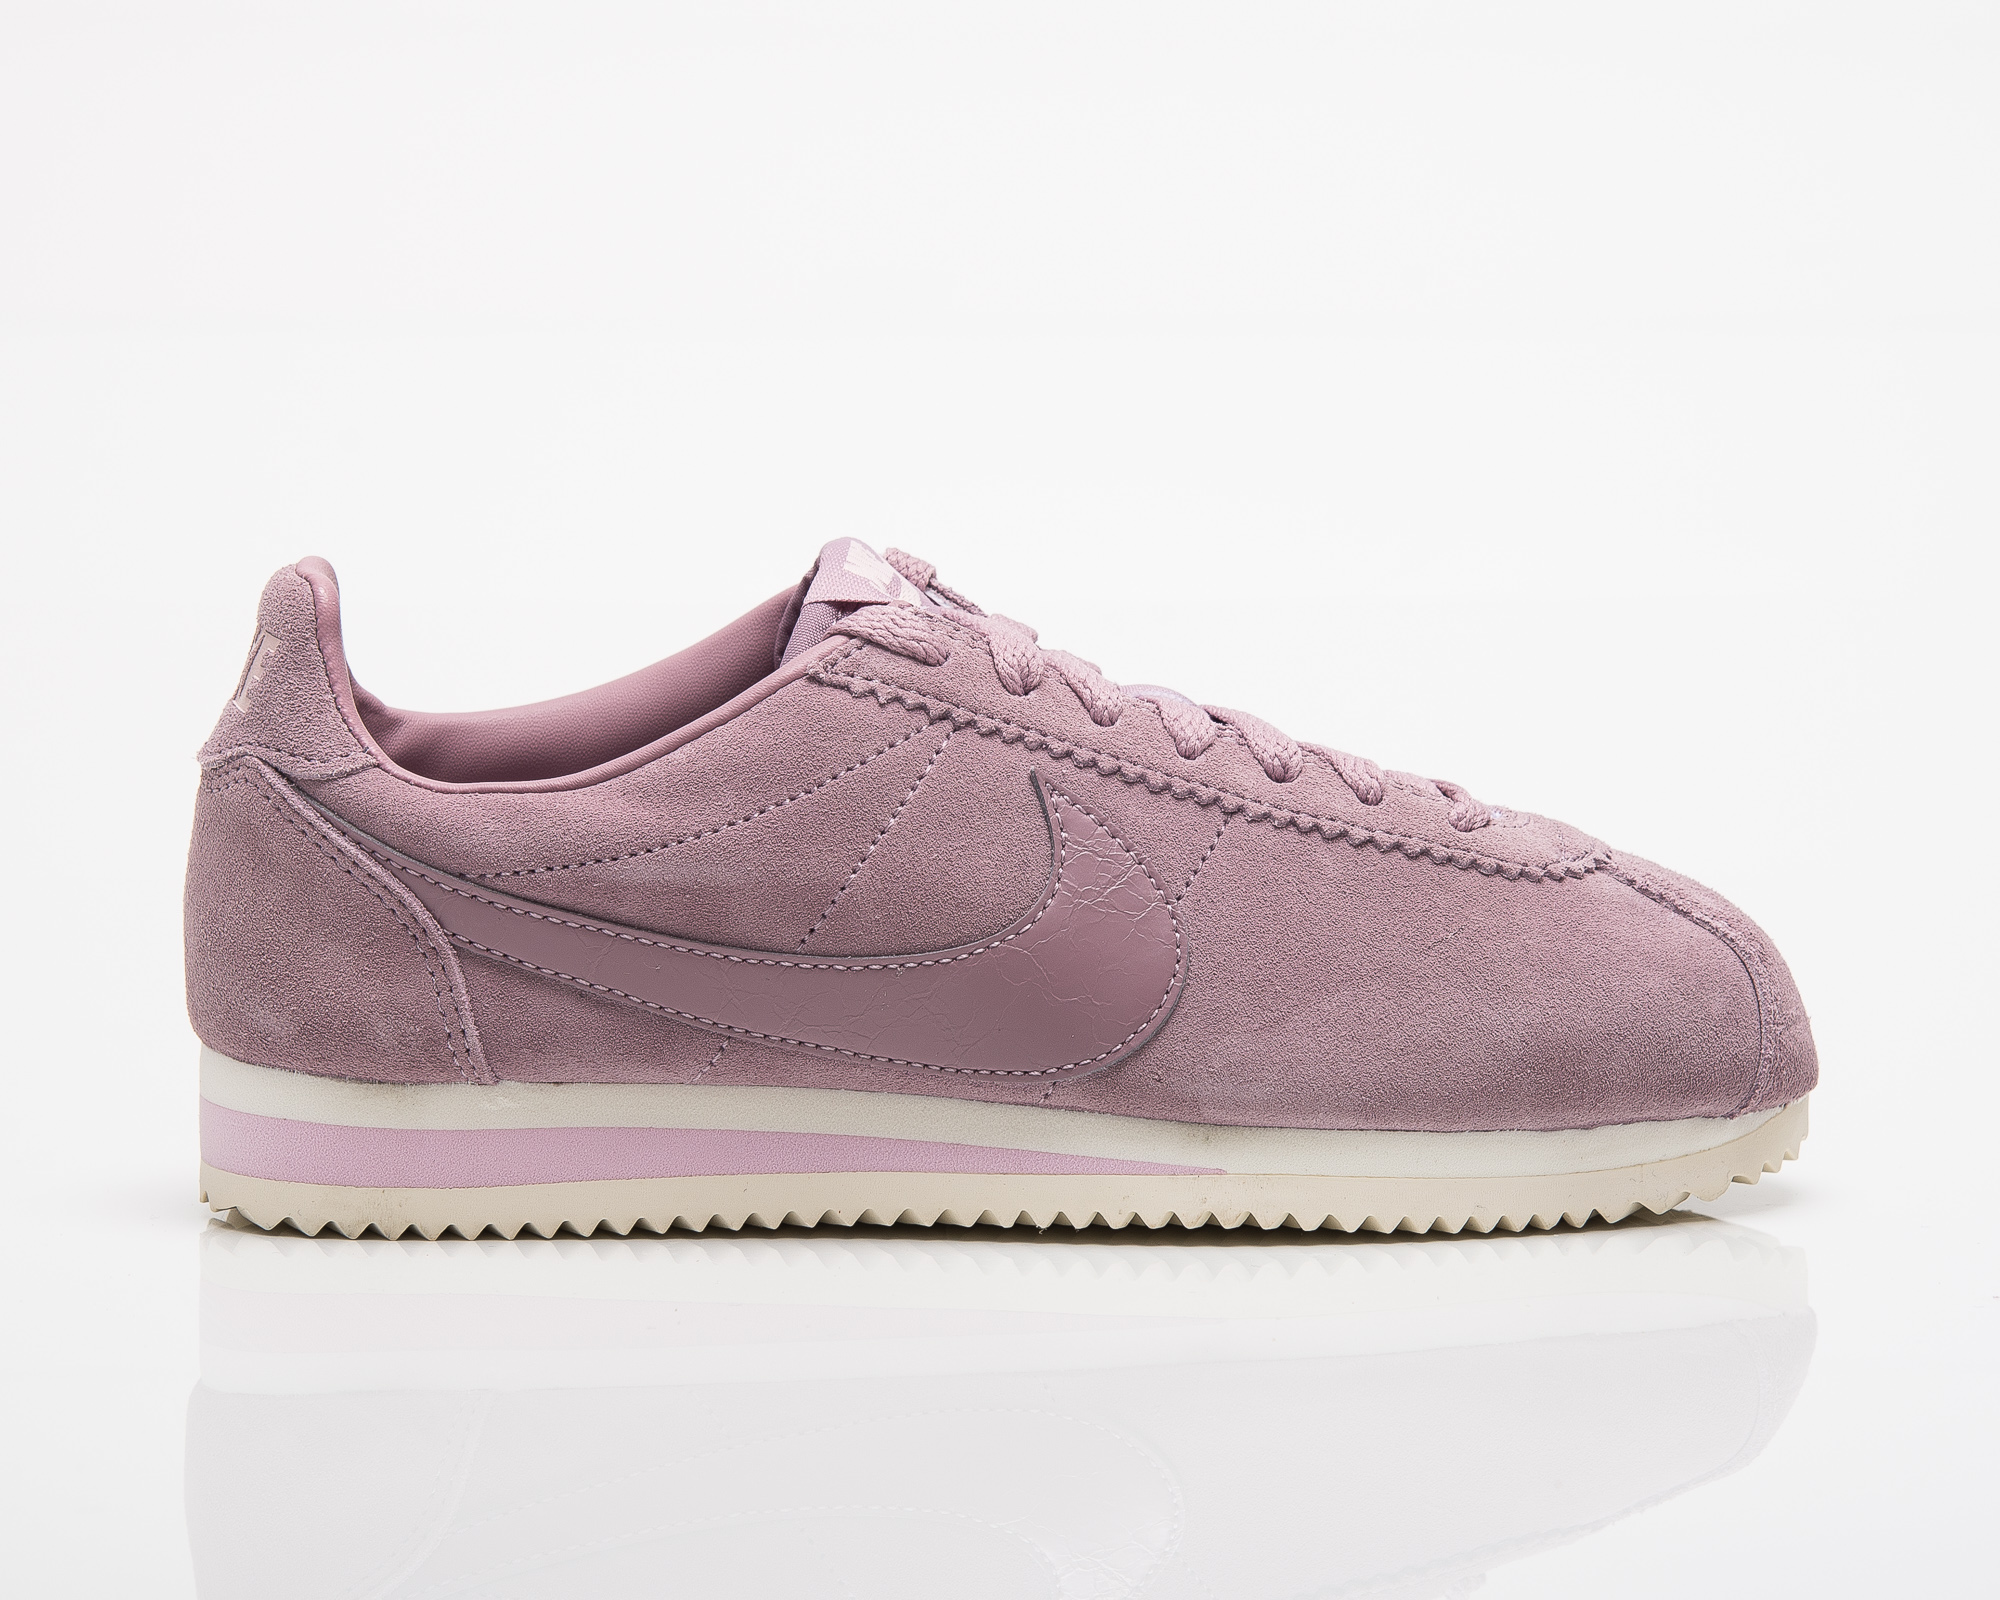 5bb88206cb0 Nike Wmns Classic Cortez Suede - Shoes Casual - Sporting goods